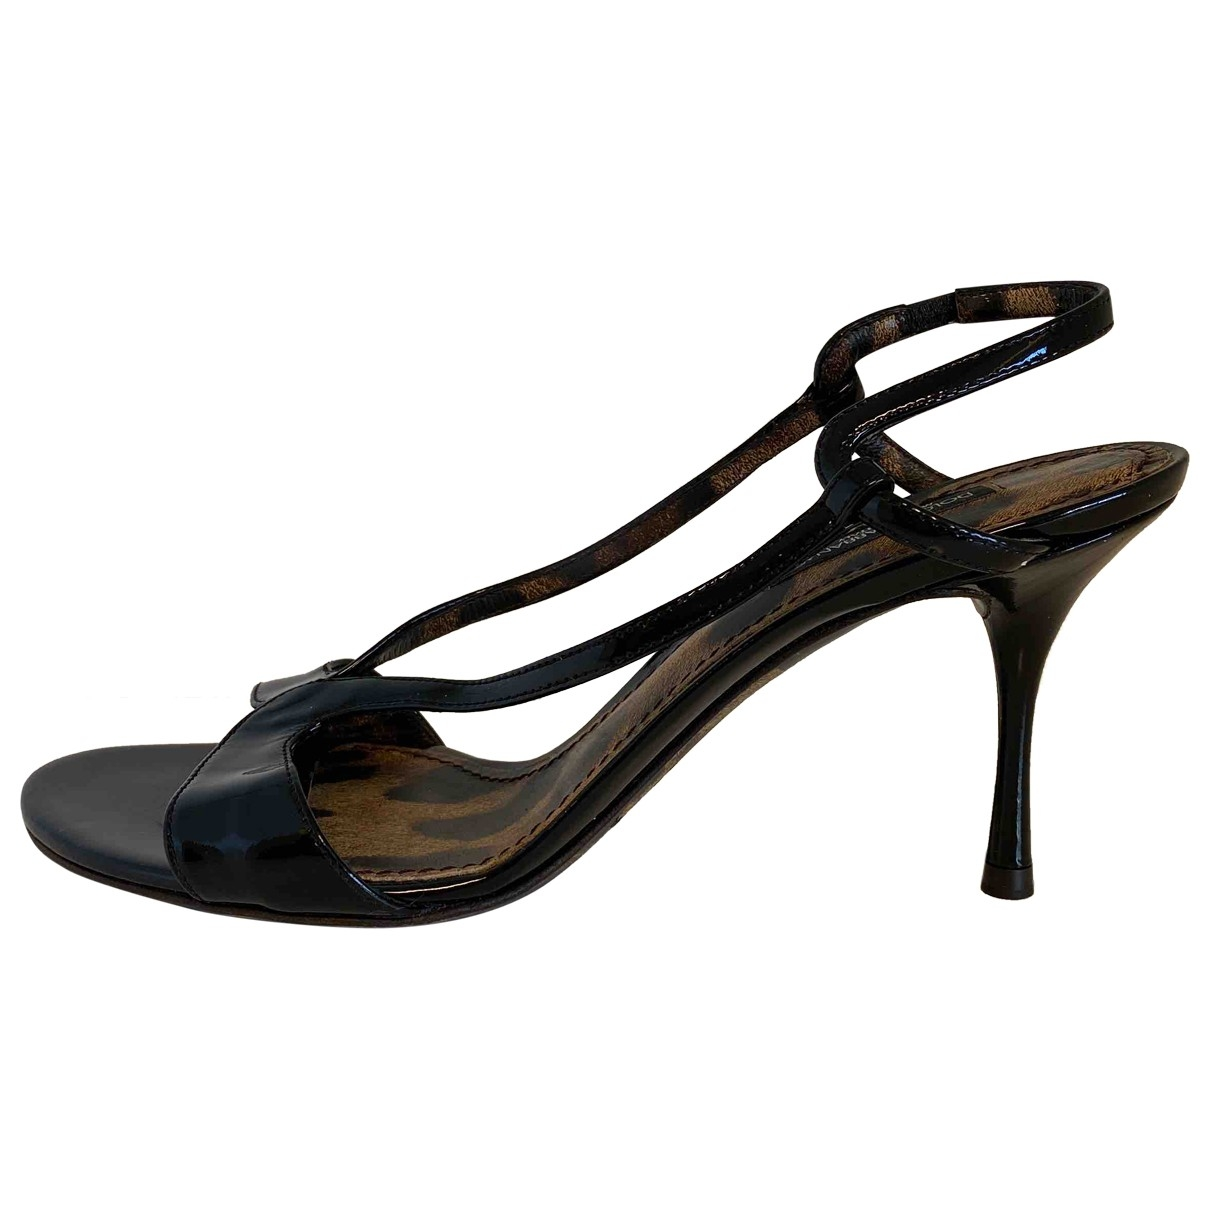 Dolce & Gabbana \N Black Patent leather Sandals for Women 37 EU